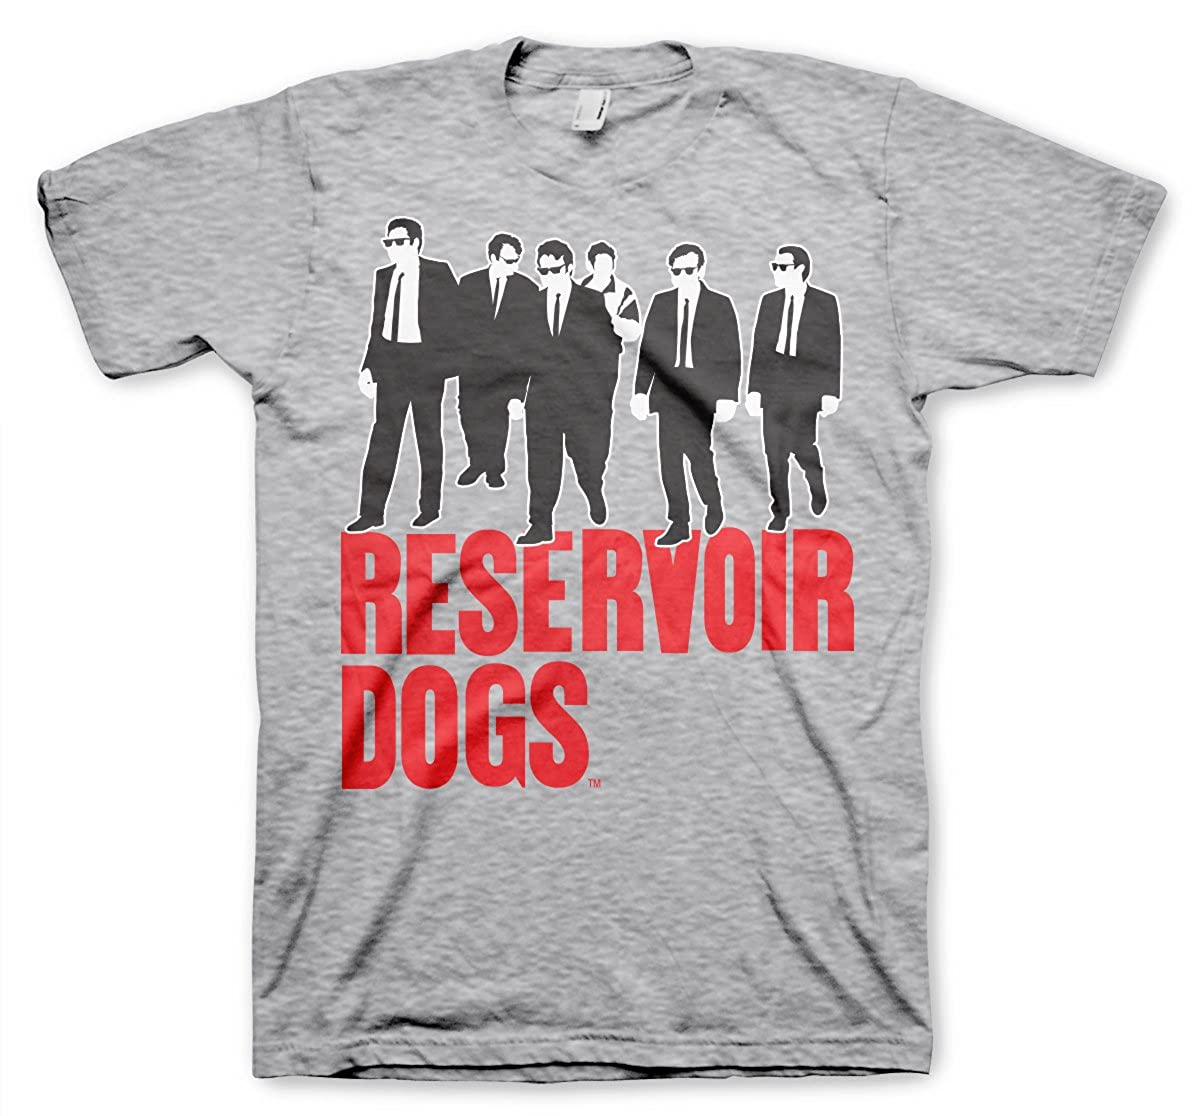 Reservoir Dogs Officially Licensed T-Shirt (Heather Grey)